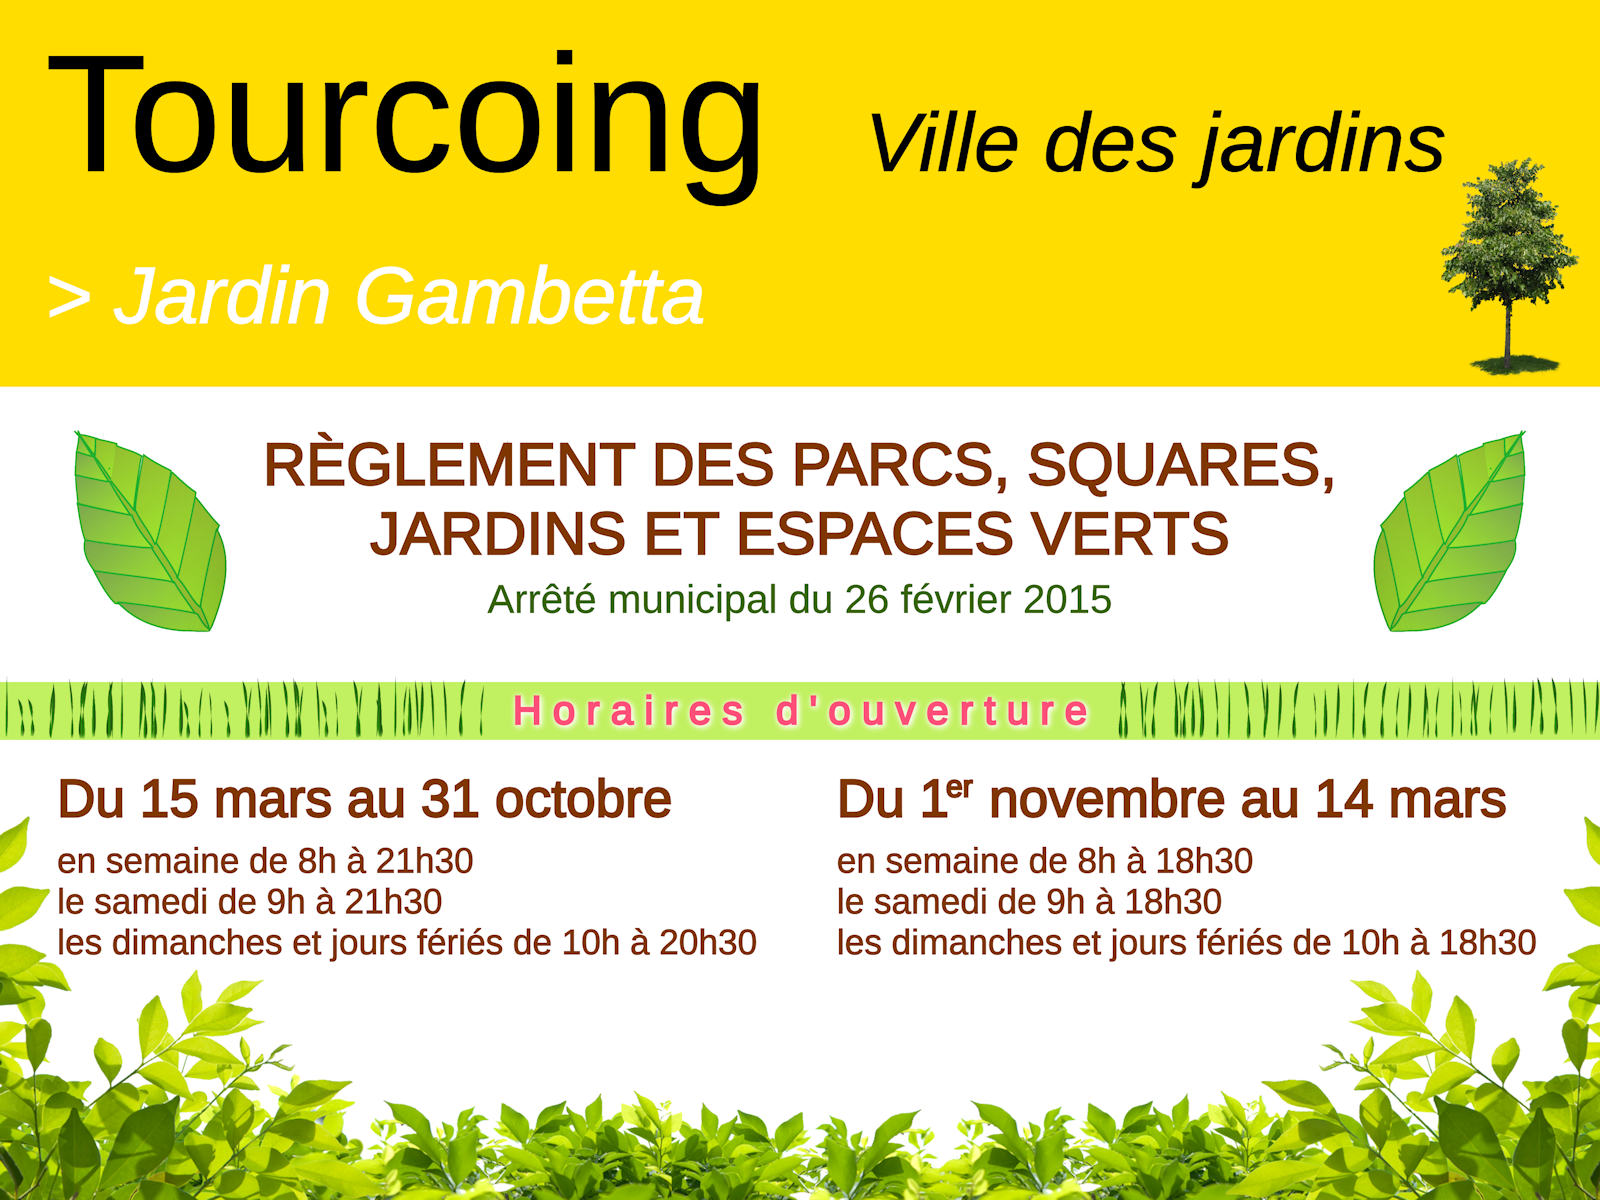 Horaires d'ouverture - Jardin Gambetta, Tourcoing